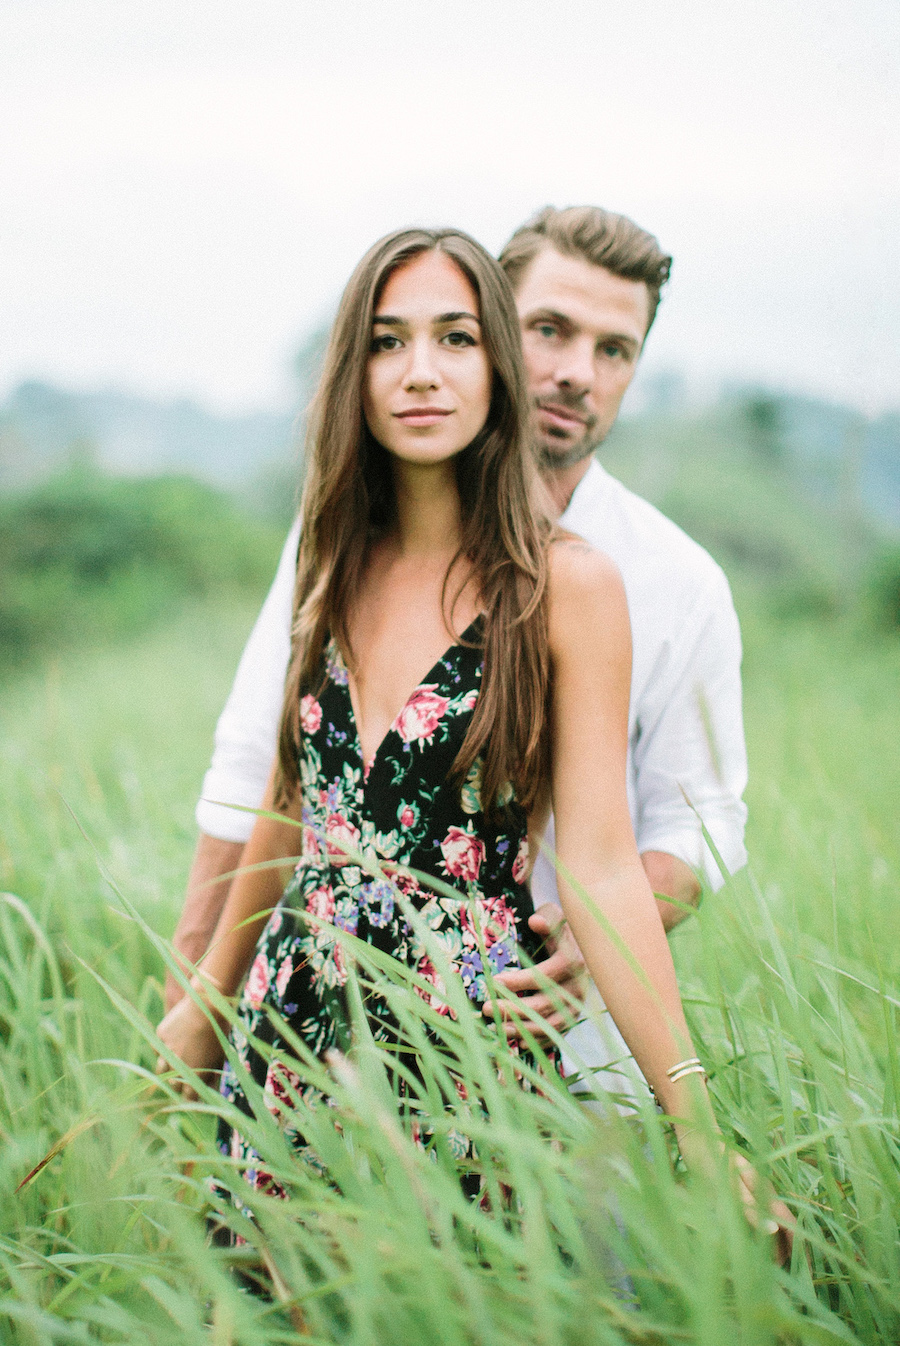 saya-photography-pre-wedding-bali-rice-field-25.jpg